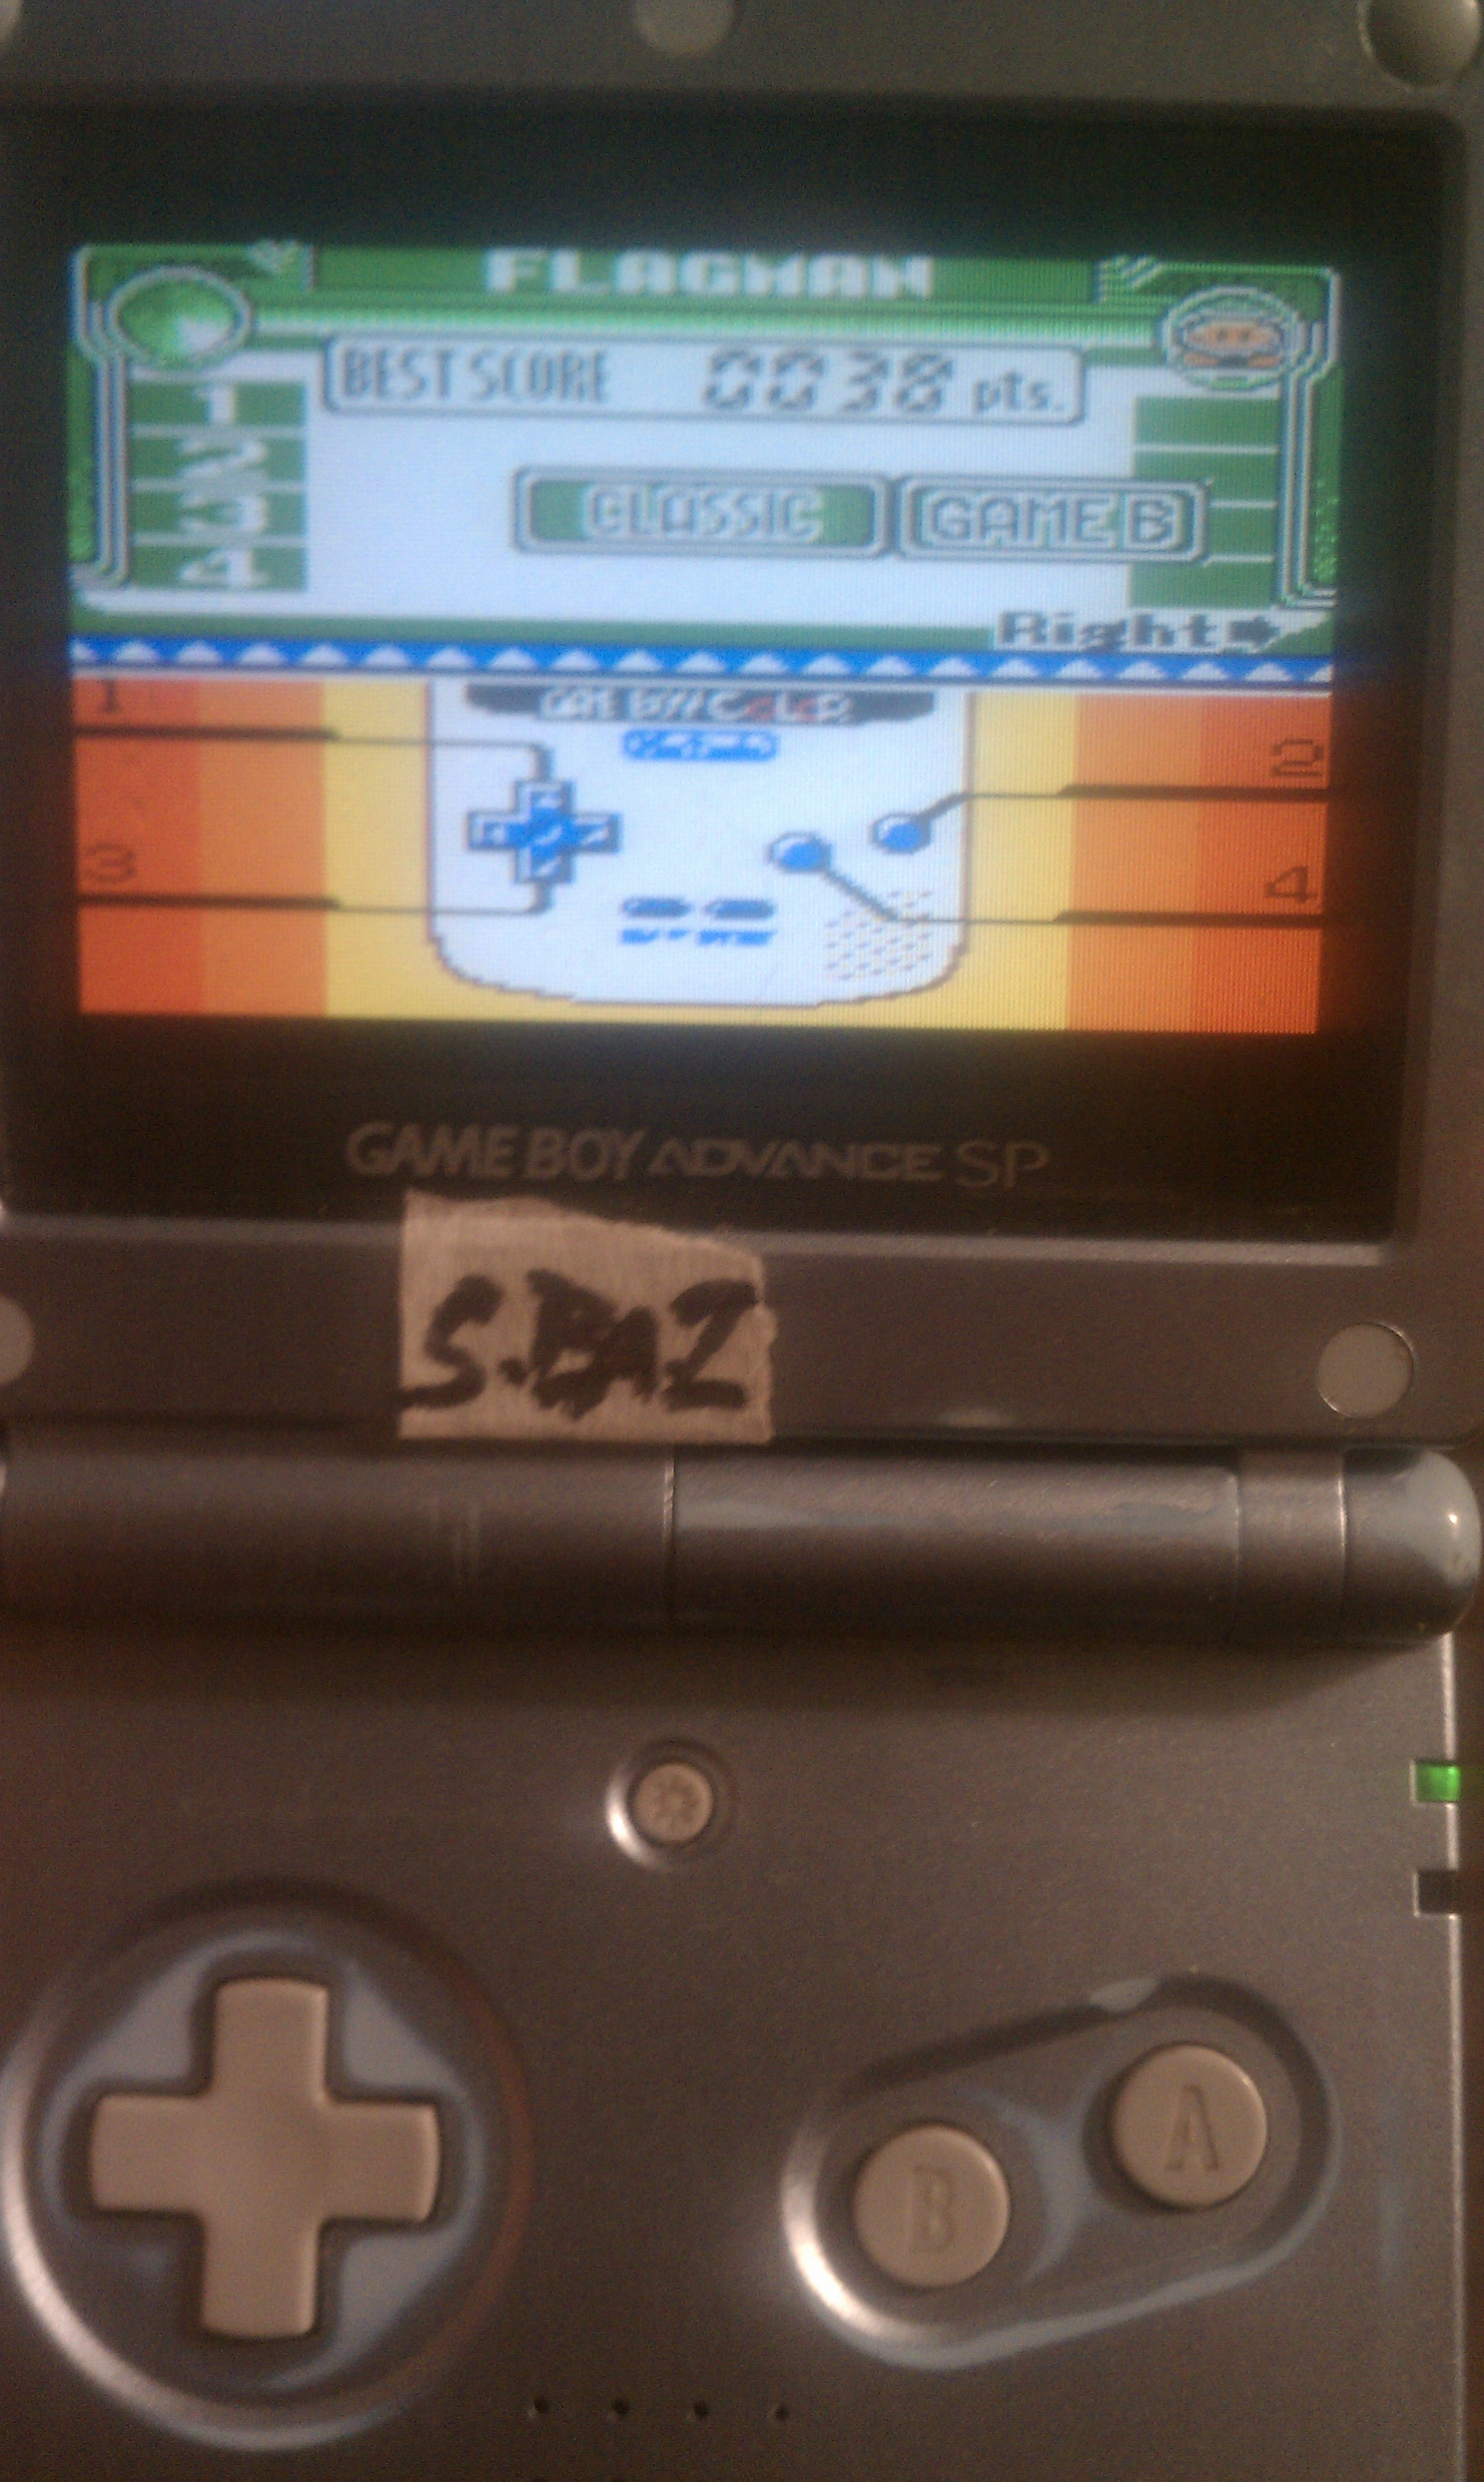 Game & Watch Gallery 3: Flagman [Classic: Game B] 38 points